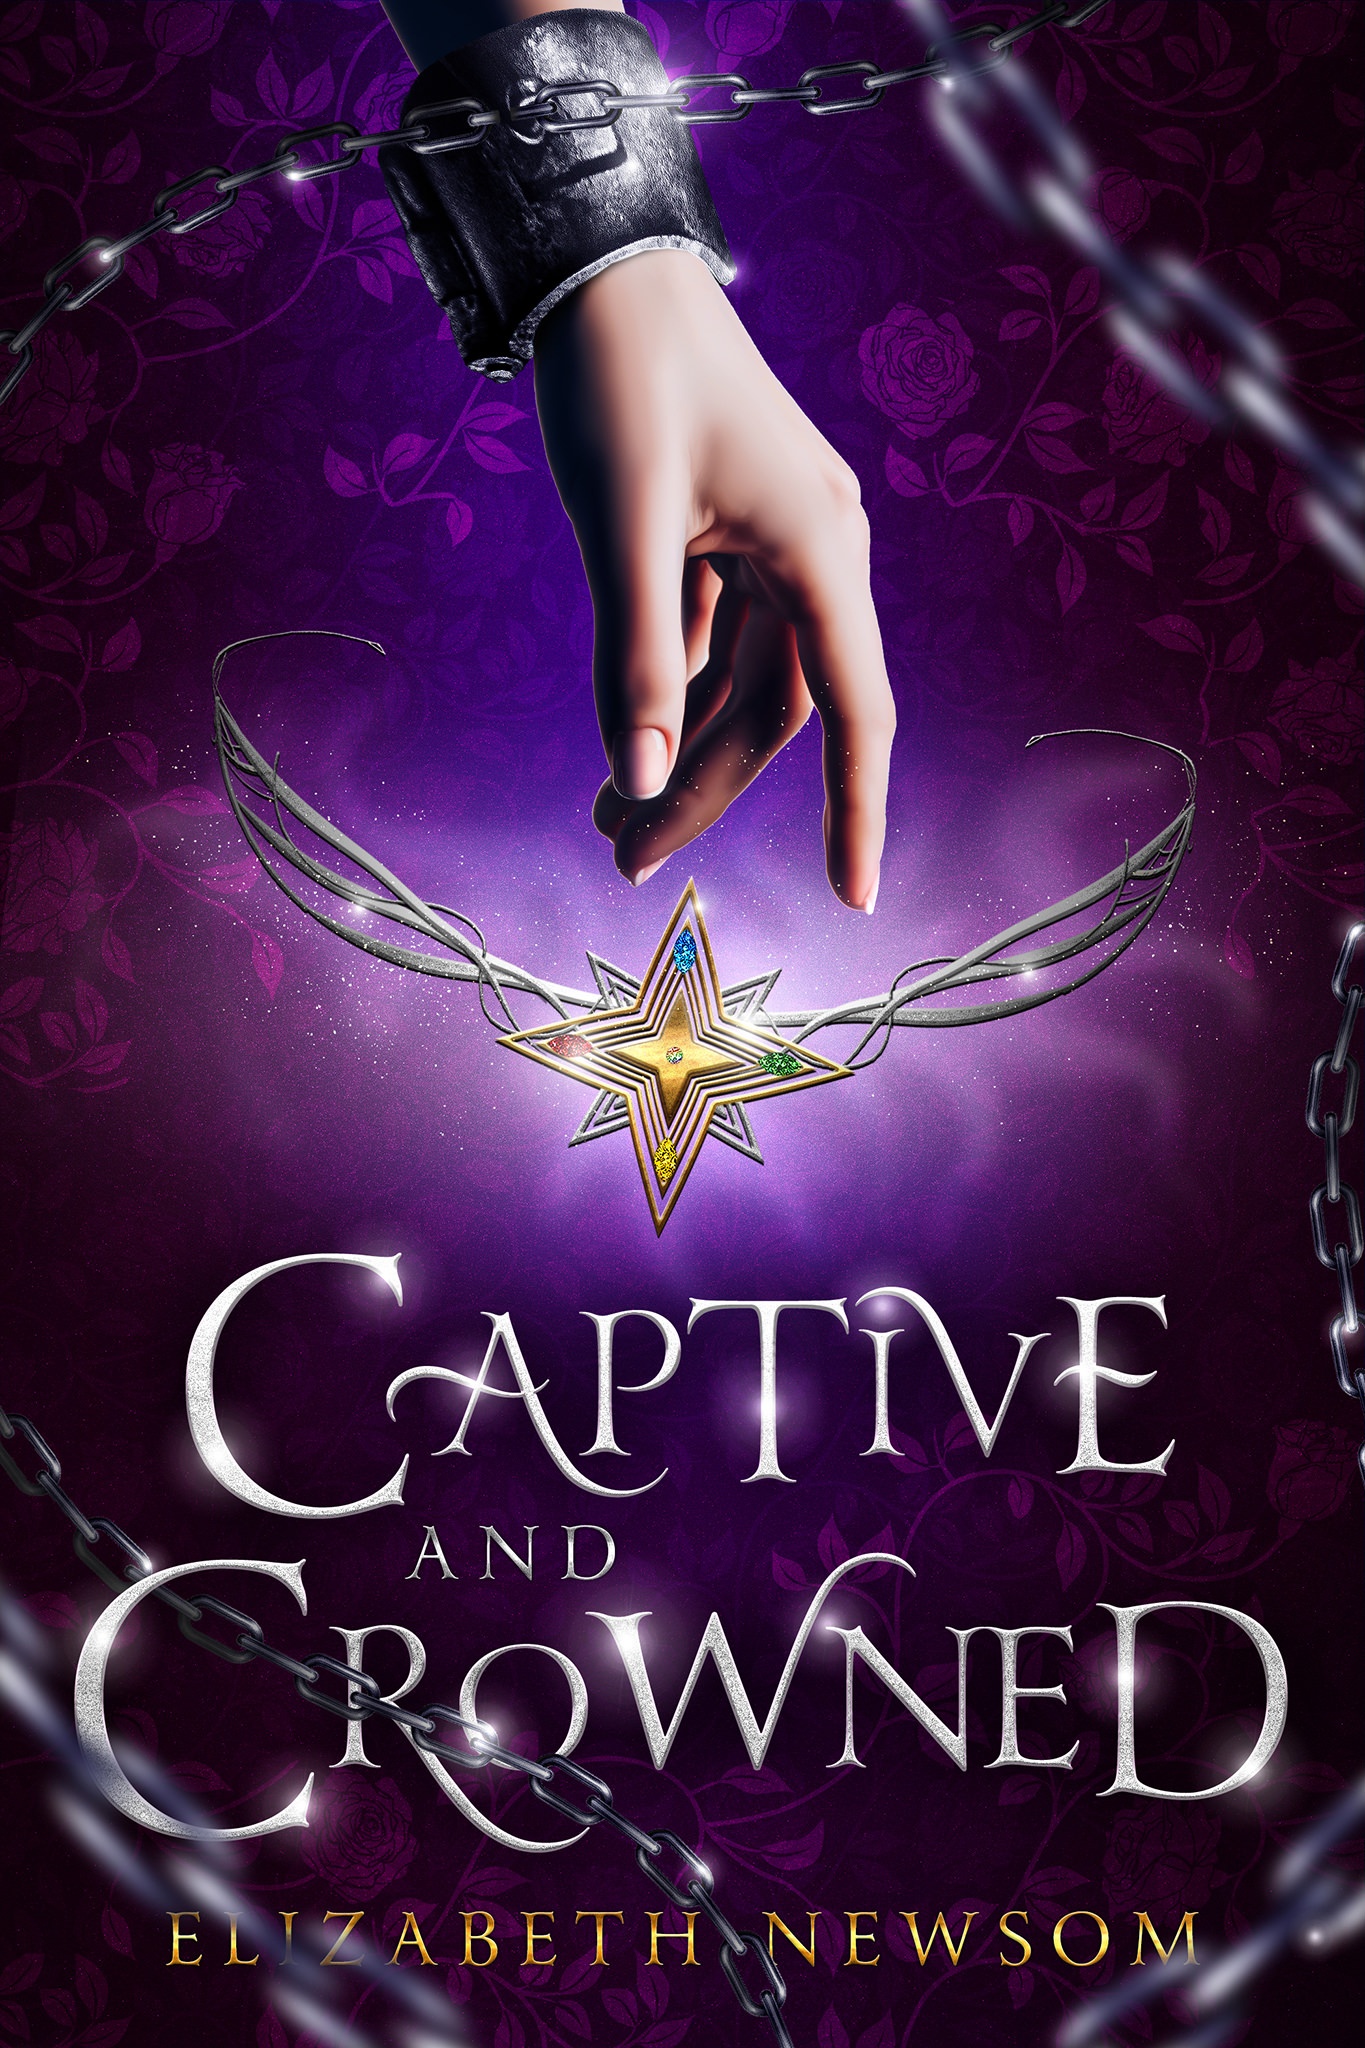 //www.elizabethnewsom.com/wp-content/uploads/2019/07/elizabeth-newsom-the-torvan-trilogy-captive-and-crowned-young-adult-fantasy-romance.jpg